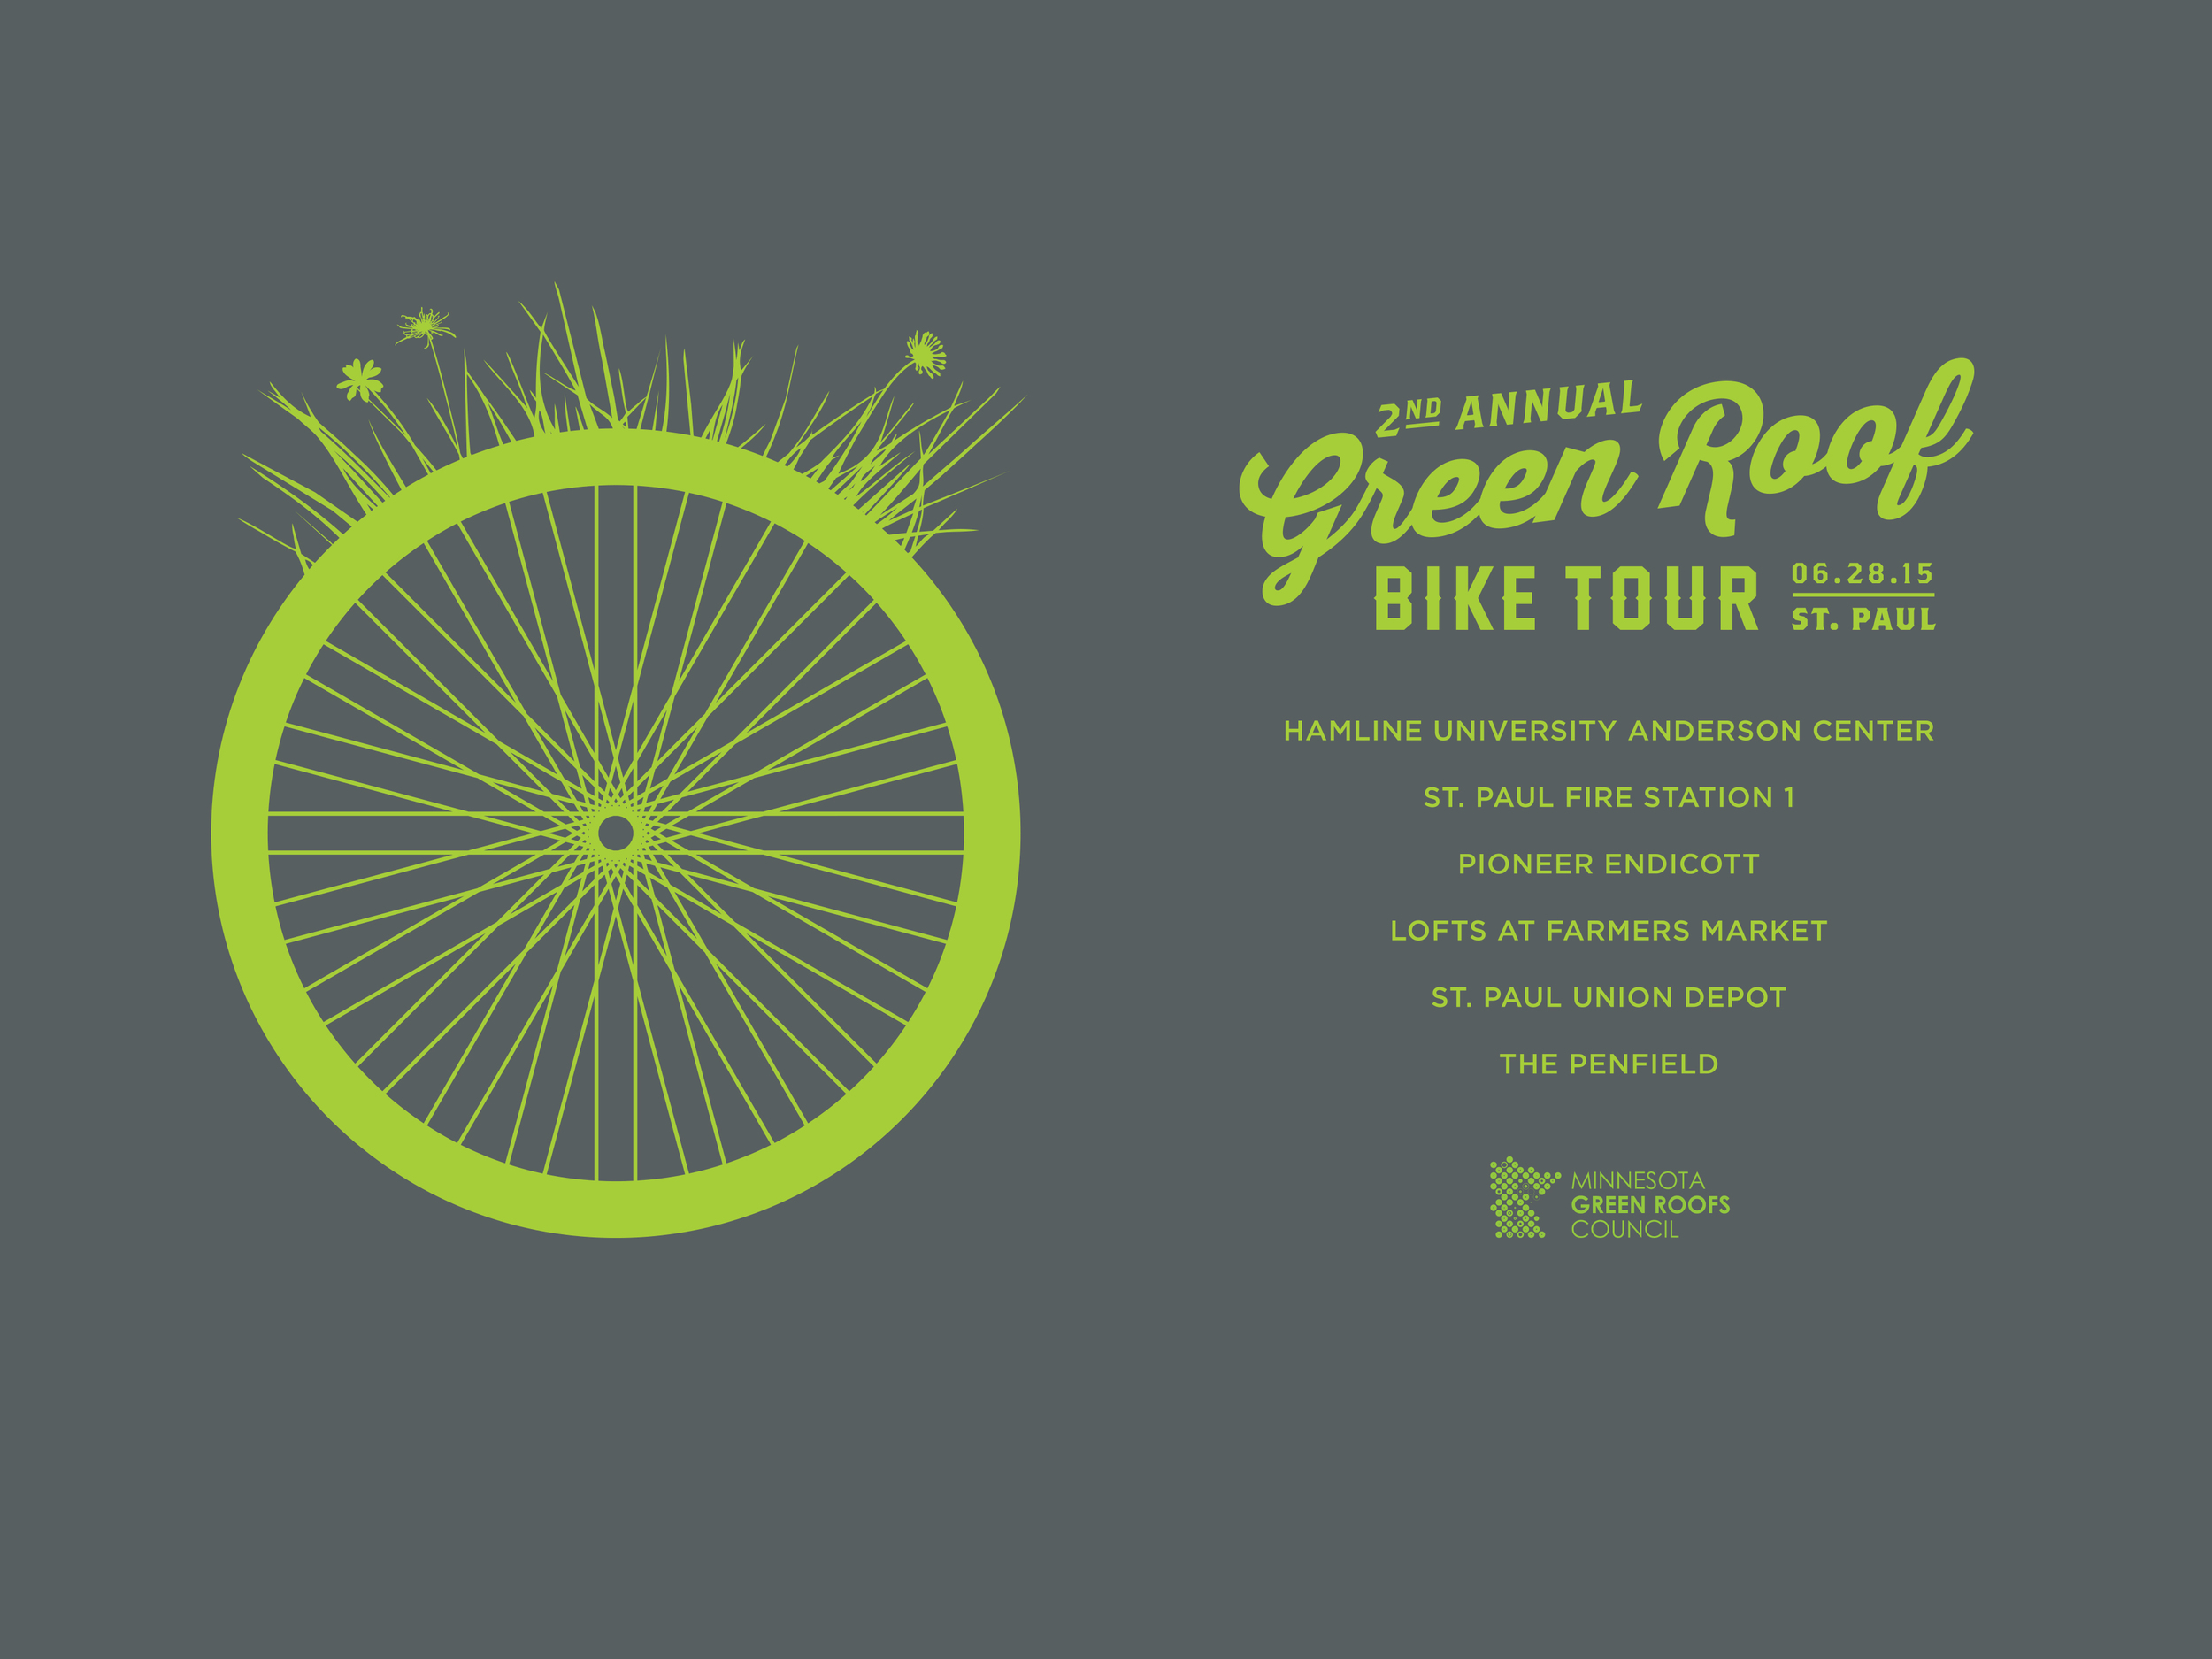 MN Green Roof Bike Tour Tshirts